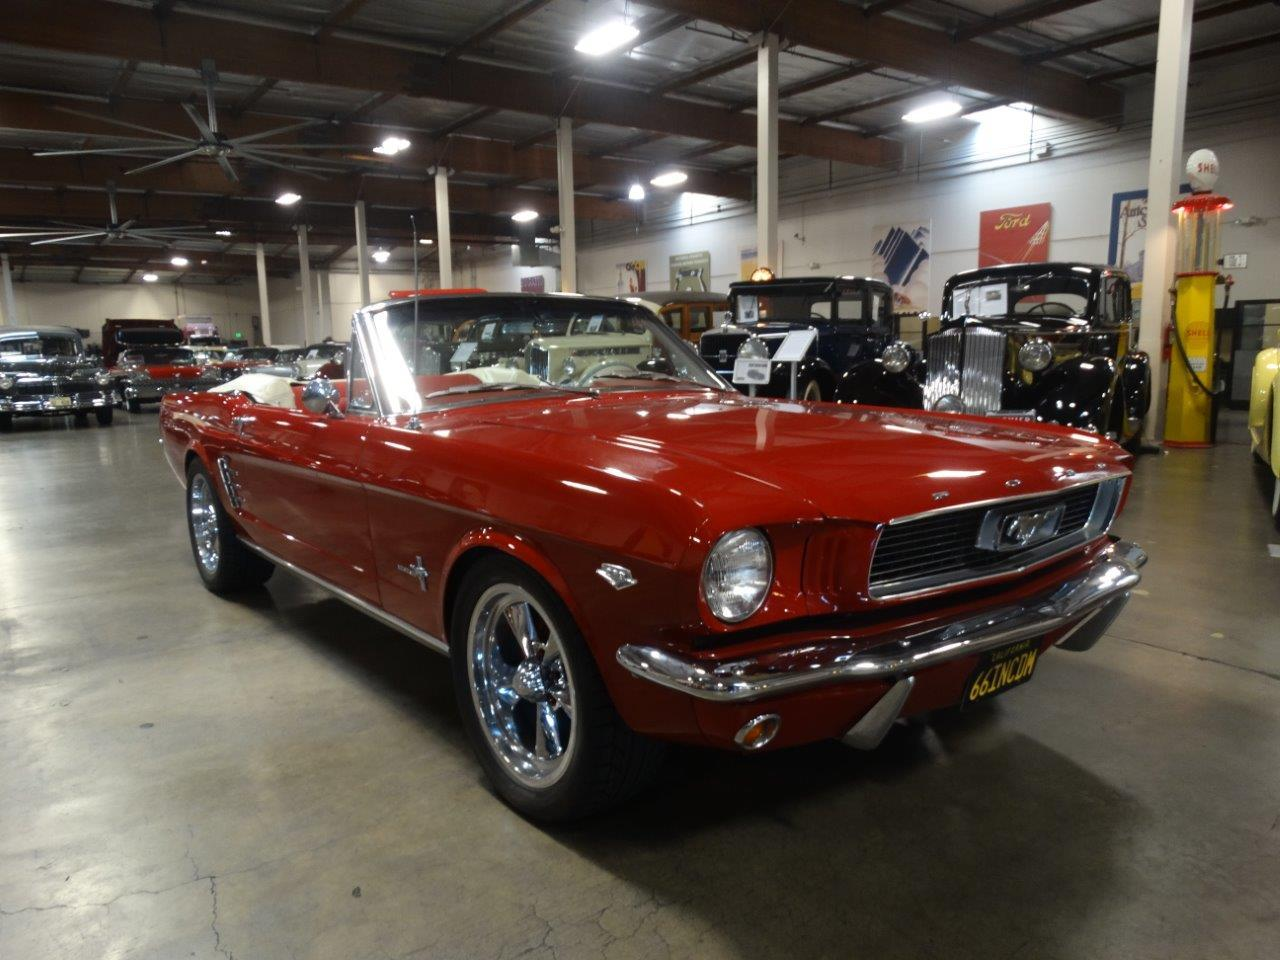 Large picture of 66 mustang n105